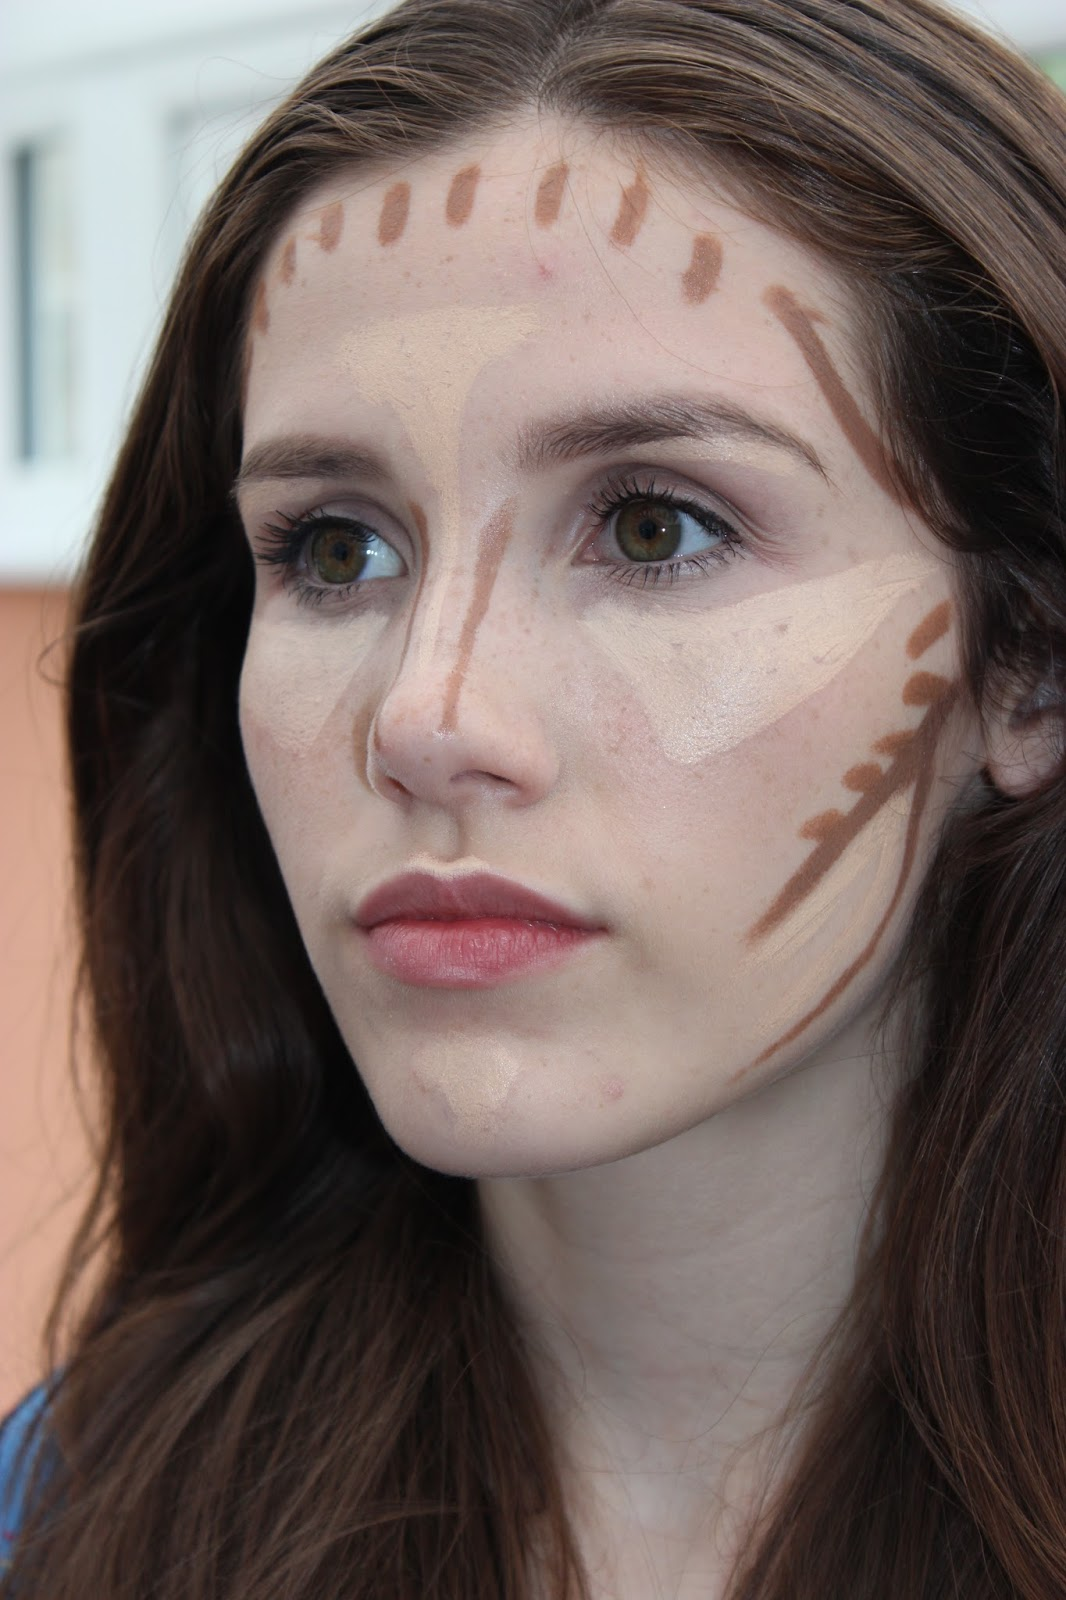 In Case You Want To Know How To Contour Check Out This Video Which Just So  Happens To Be By One Of My Favourite Youtubers And Uses The Contour Sticks